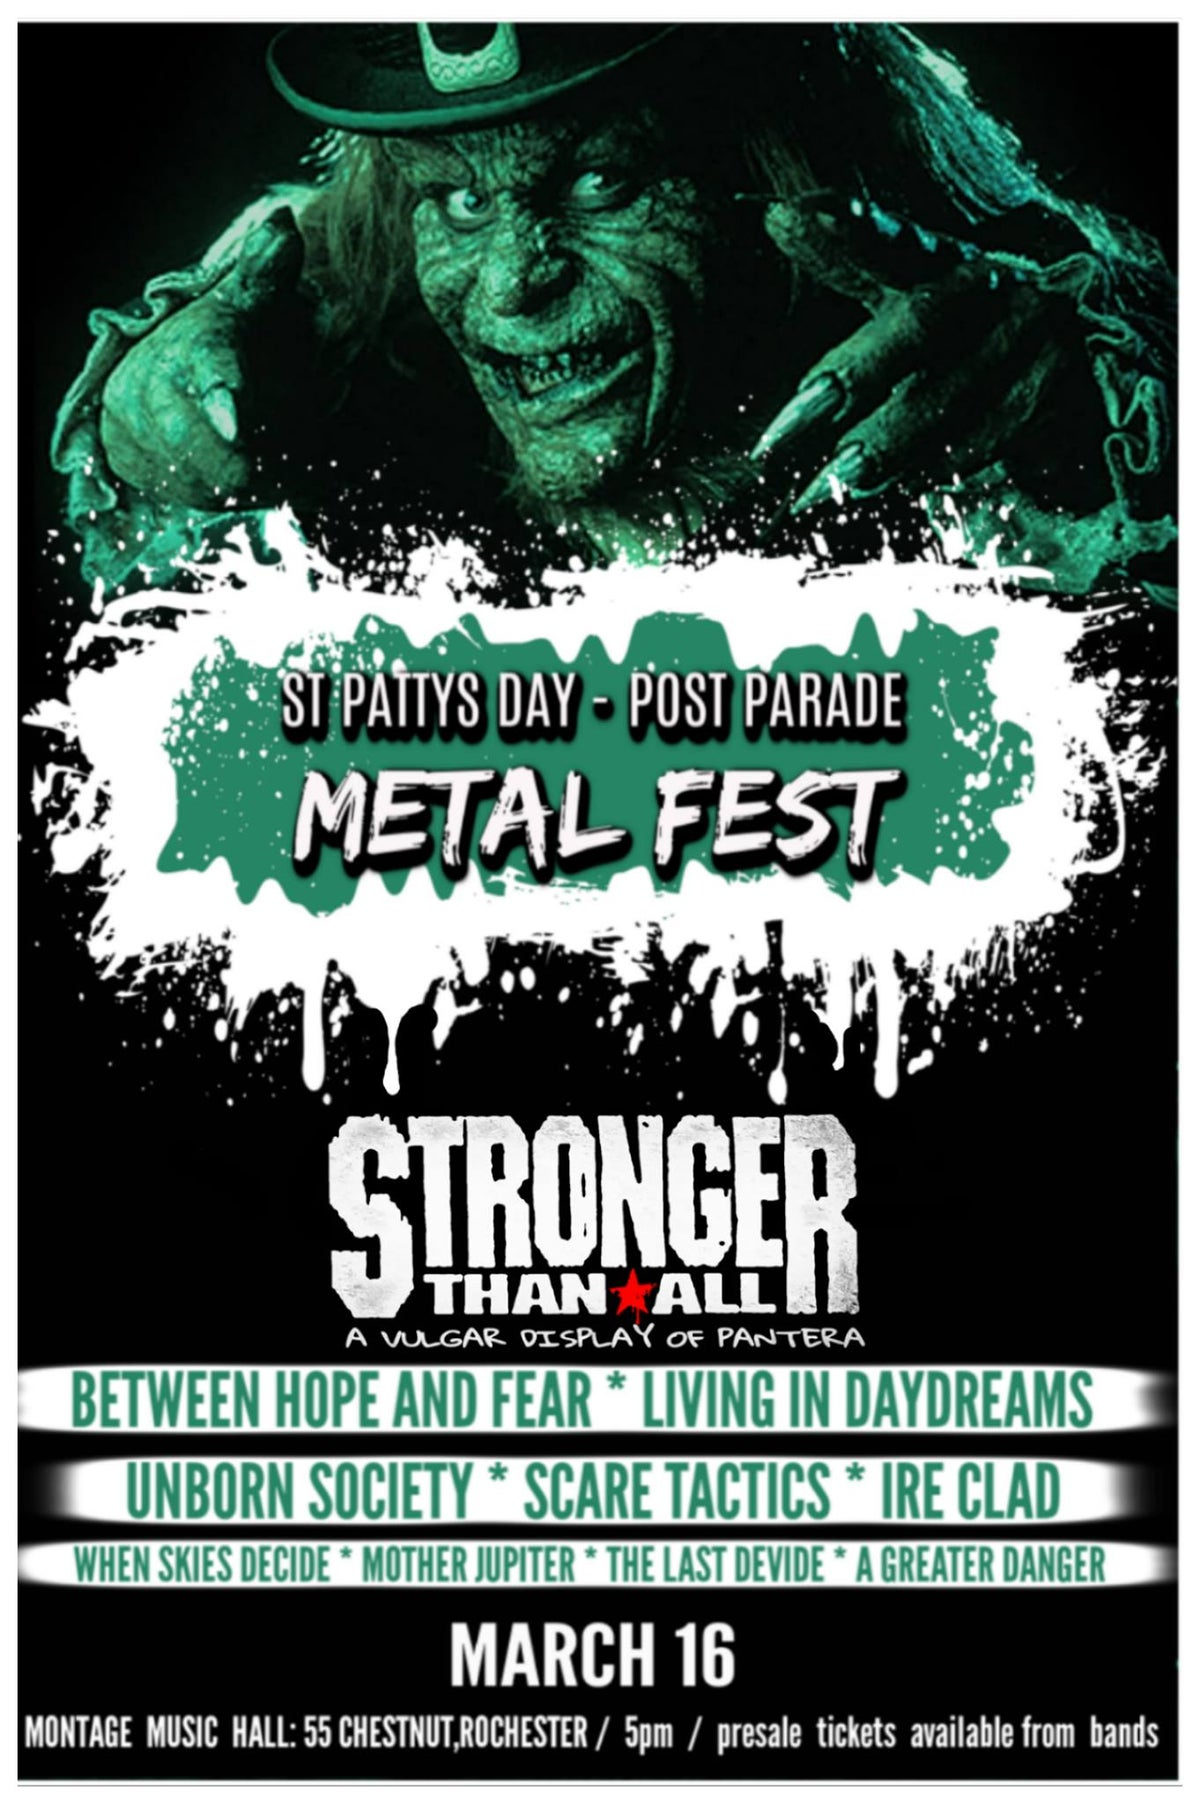 Image of St. Patty's Day Metal Fest